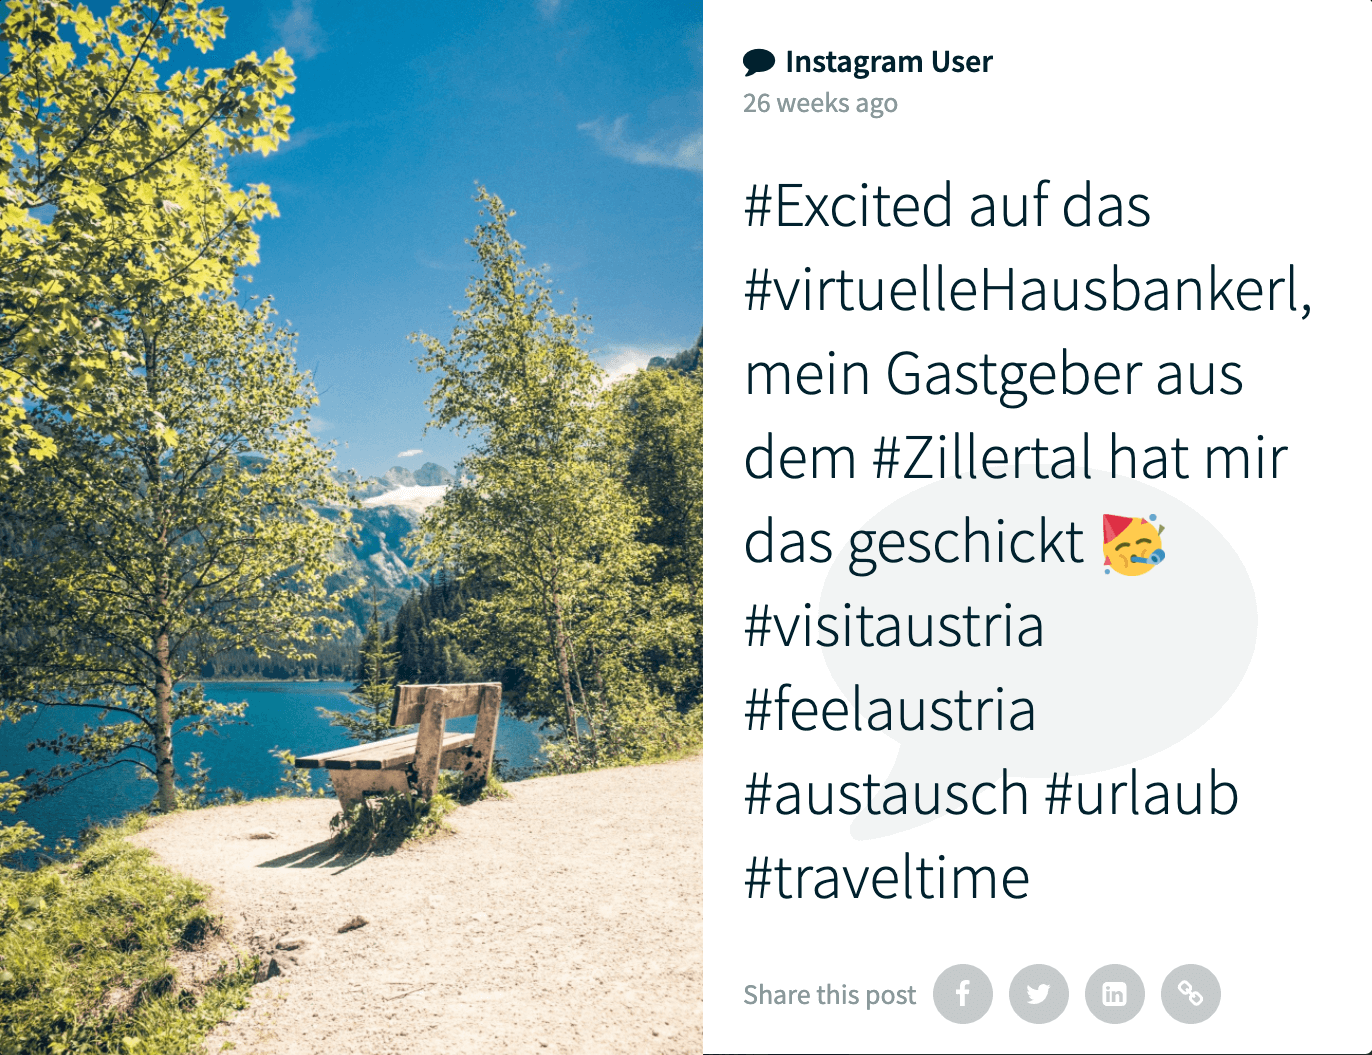 Post by an instagram user on the social wall. The photo shows a wooden bench at the side of a path, surrounded by trees and overlooking turquoise-blue water. The caption reads: #Excited auf das #virtuelleHausbankerl, mein Gastgeber aus dem #Zillertal hat mir das geschickt 🥳 #visitaustria #feelaustria #austausch #urlaub #traveltime